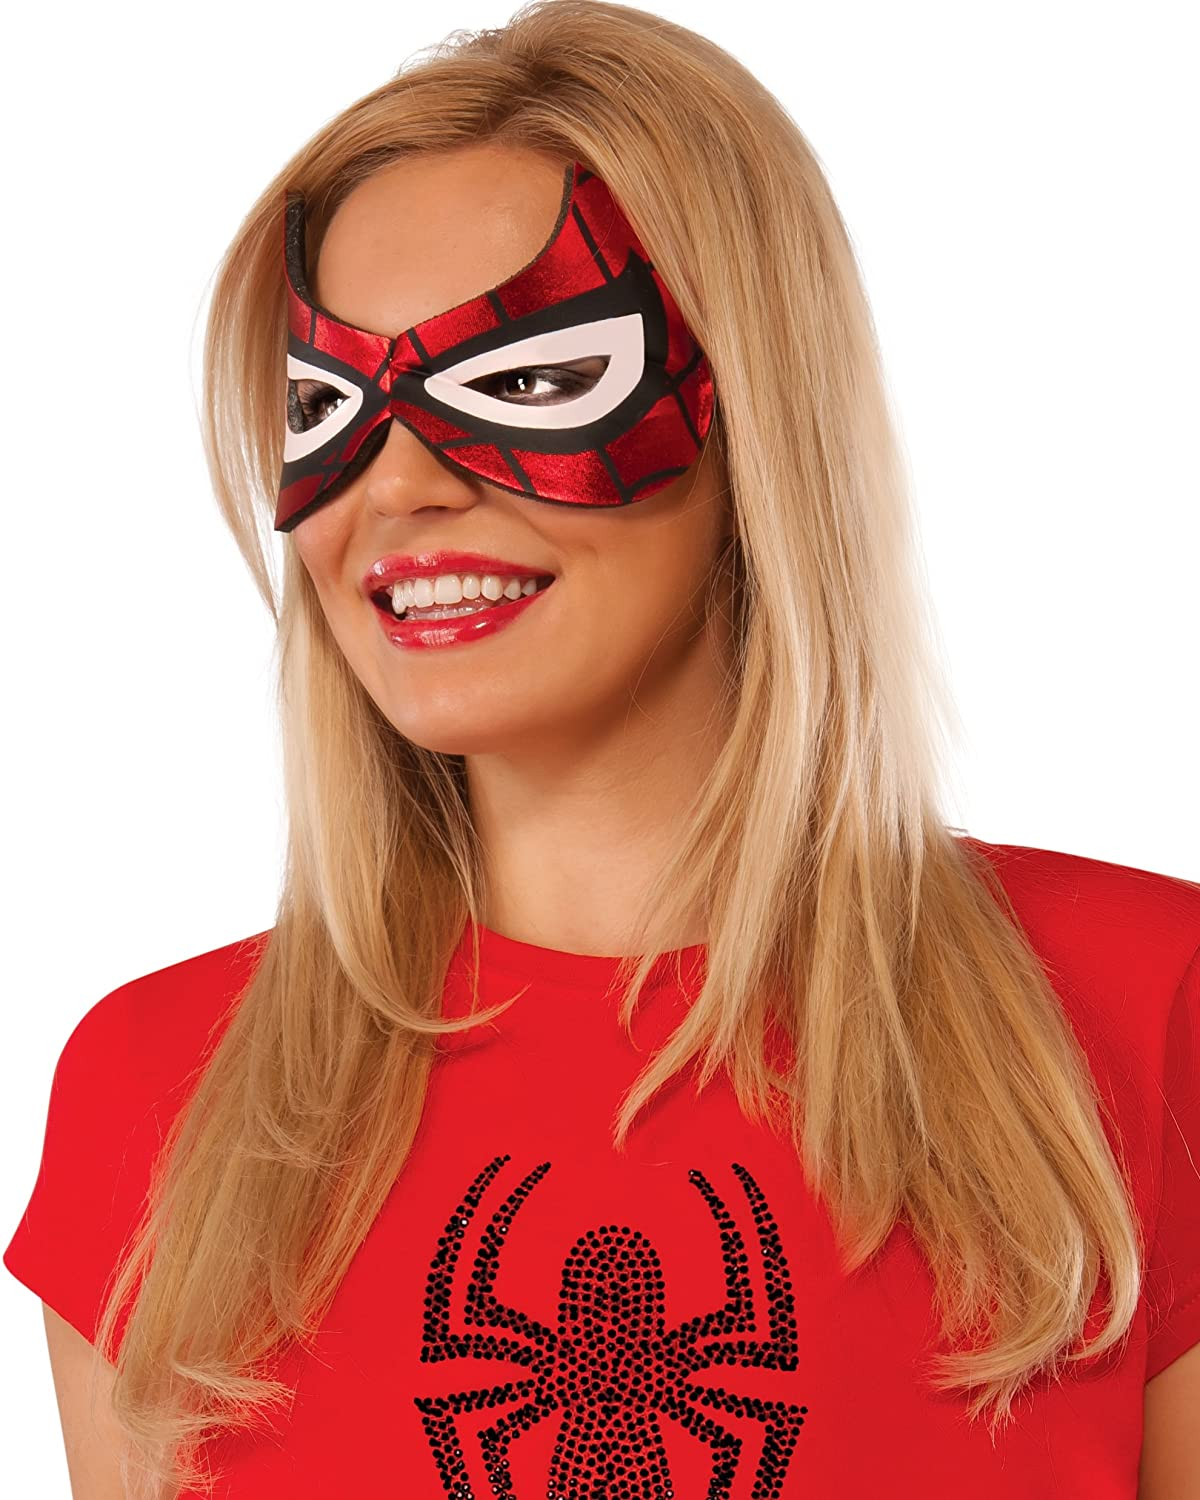 Marvel Rubie's Costume Co Women's Universe Spider-Girl Eyemask Multi One Size Rubies Costumes - Apparel 32254